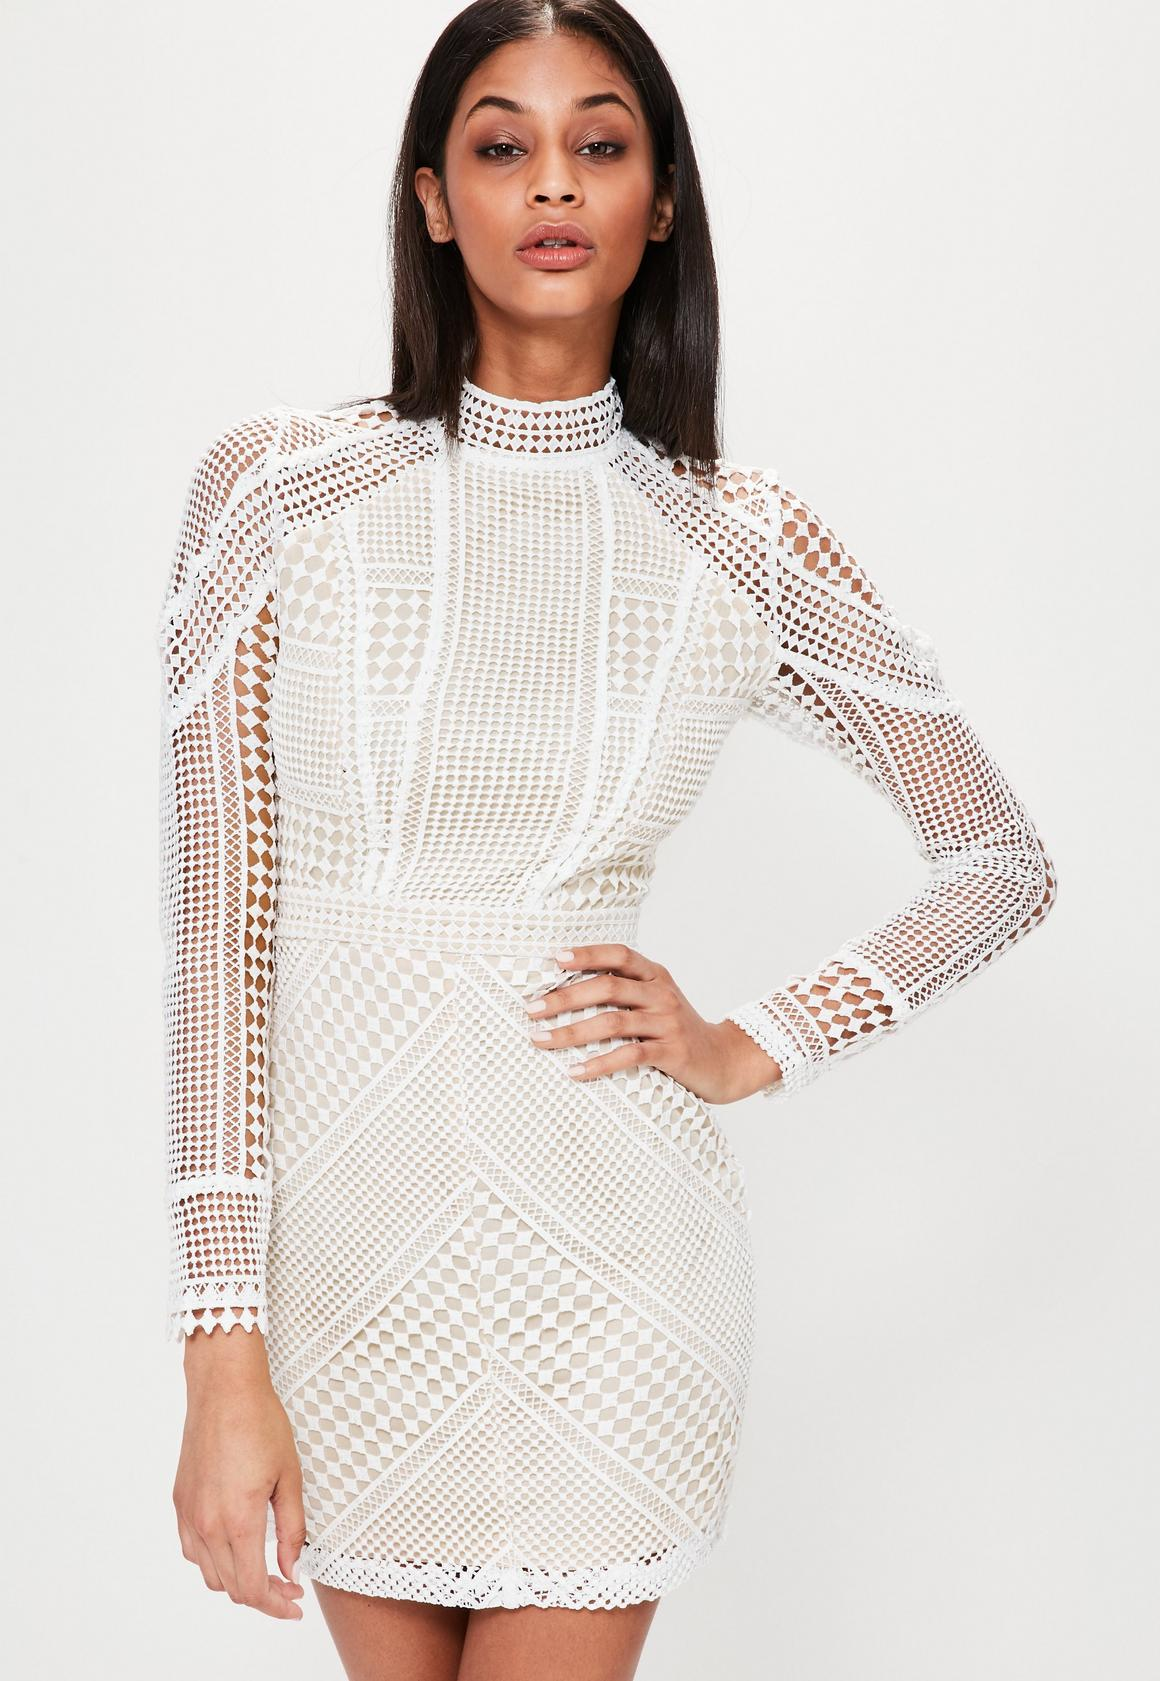 Party Dresses - Going Out & Night Out Dresses | Missguided